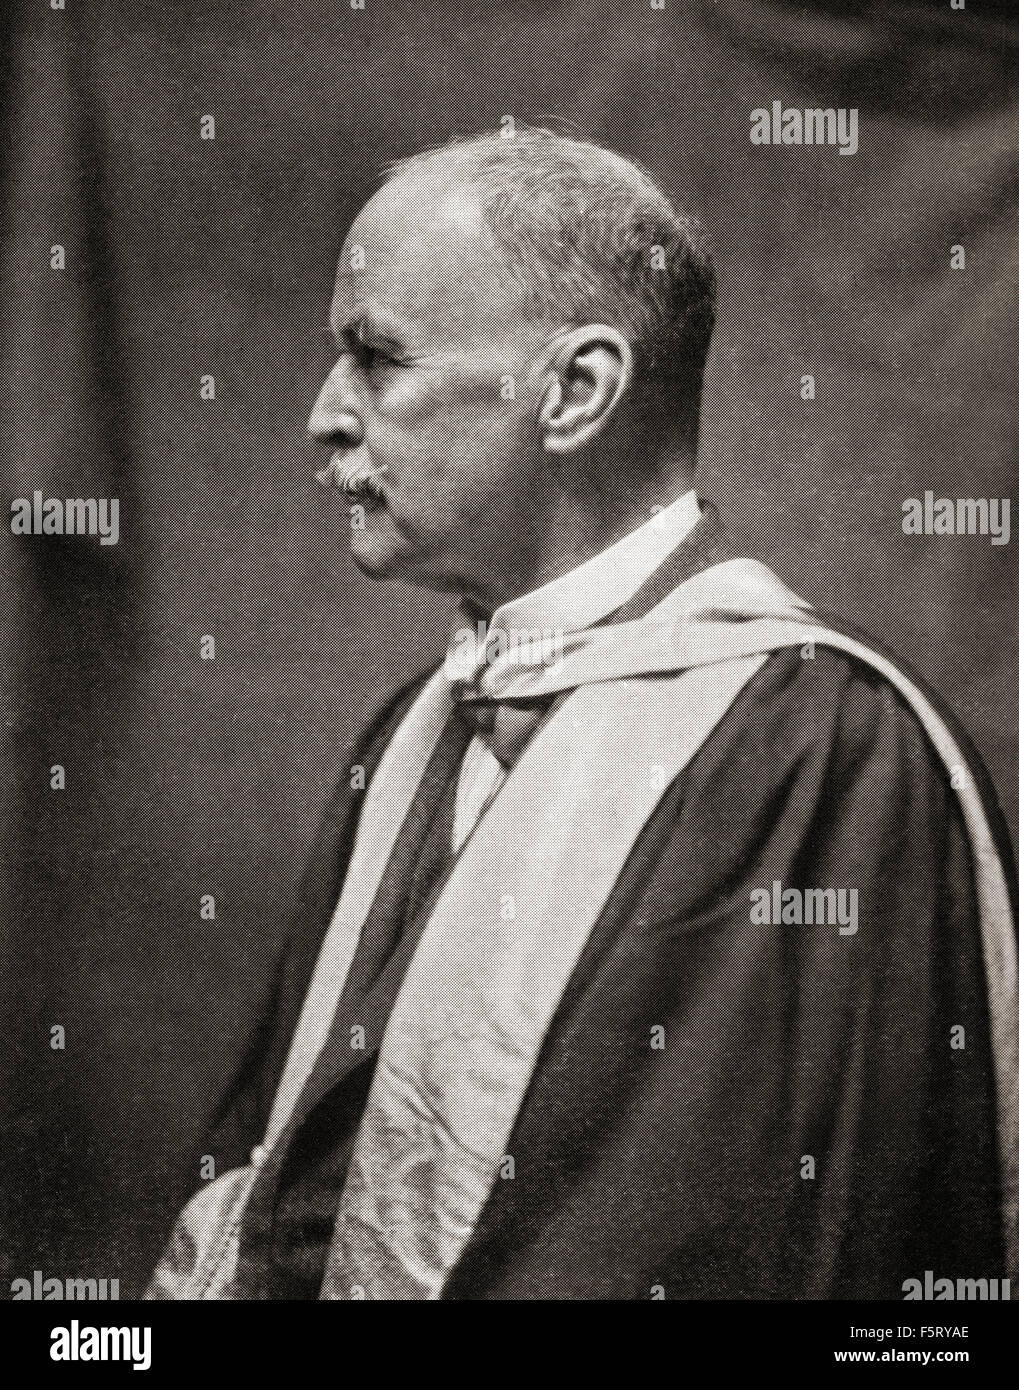 Sir Ronald Ross, 1857 – 1932.  British medical doctor, winner of the 1902 Nobel Prize for Physiology or Medicine. - Stock Image